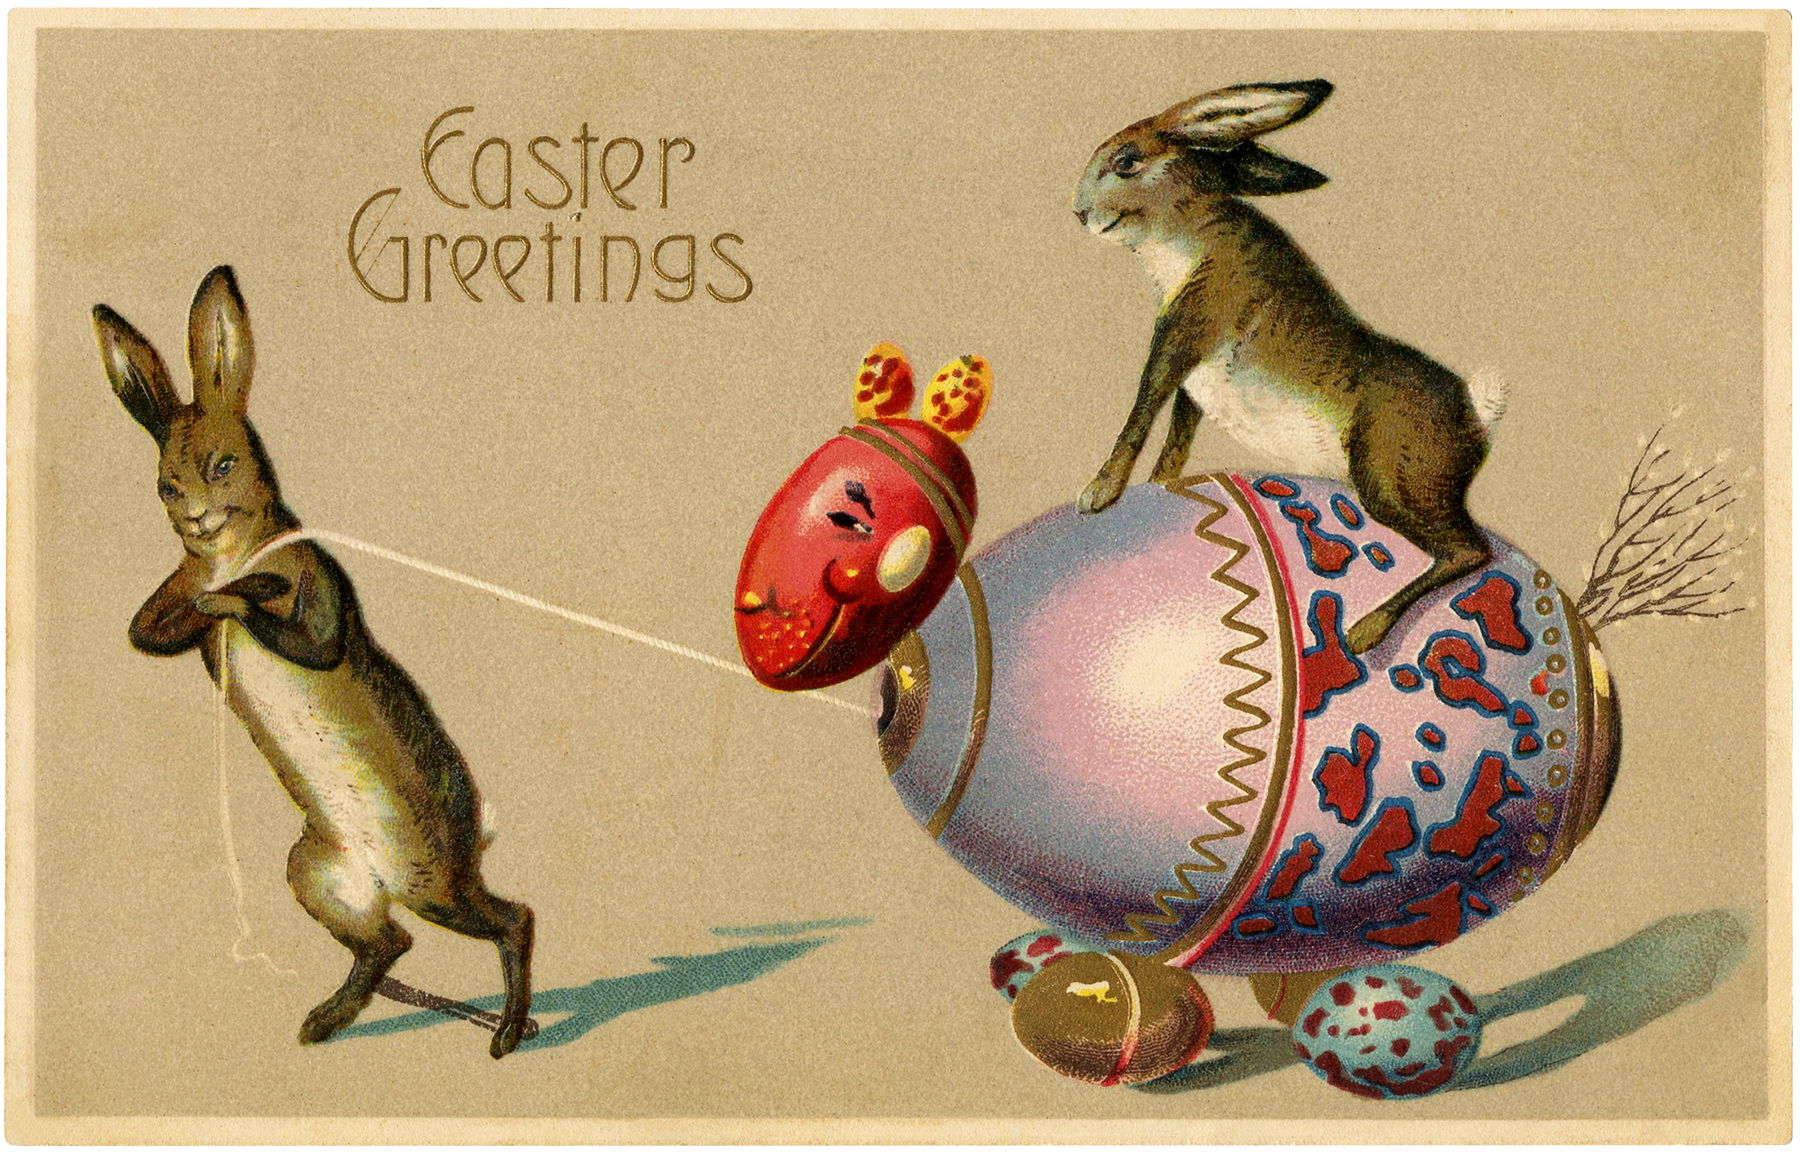 Easter Bunnies Riding Eggs Image